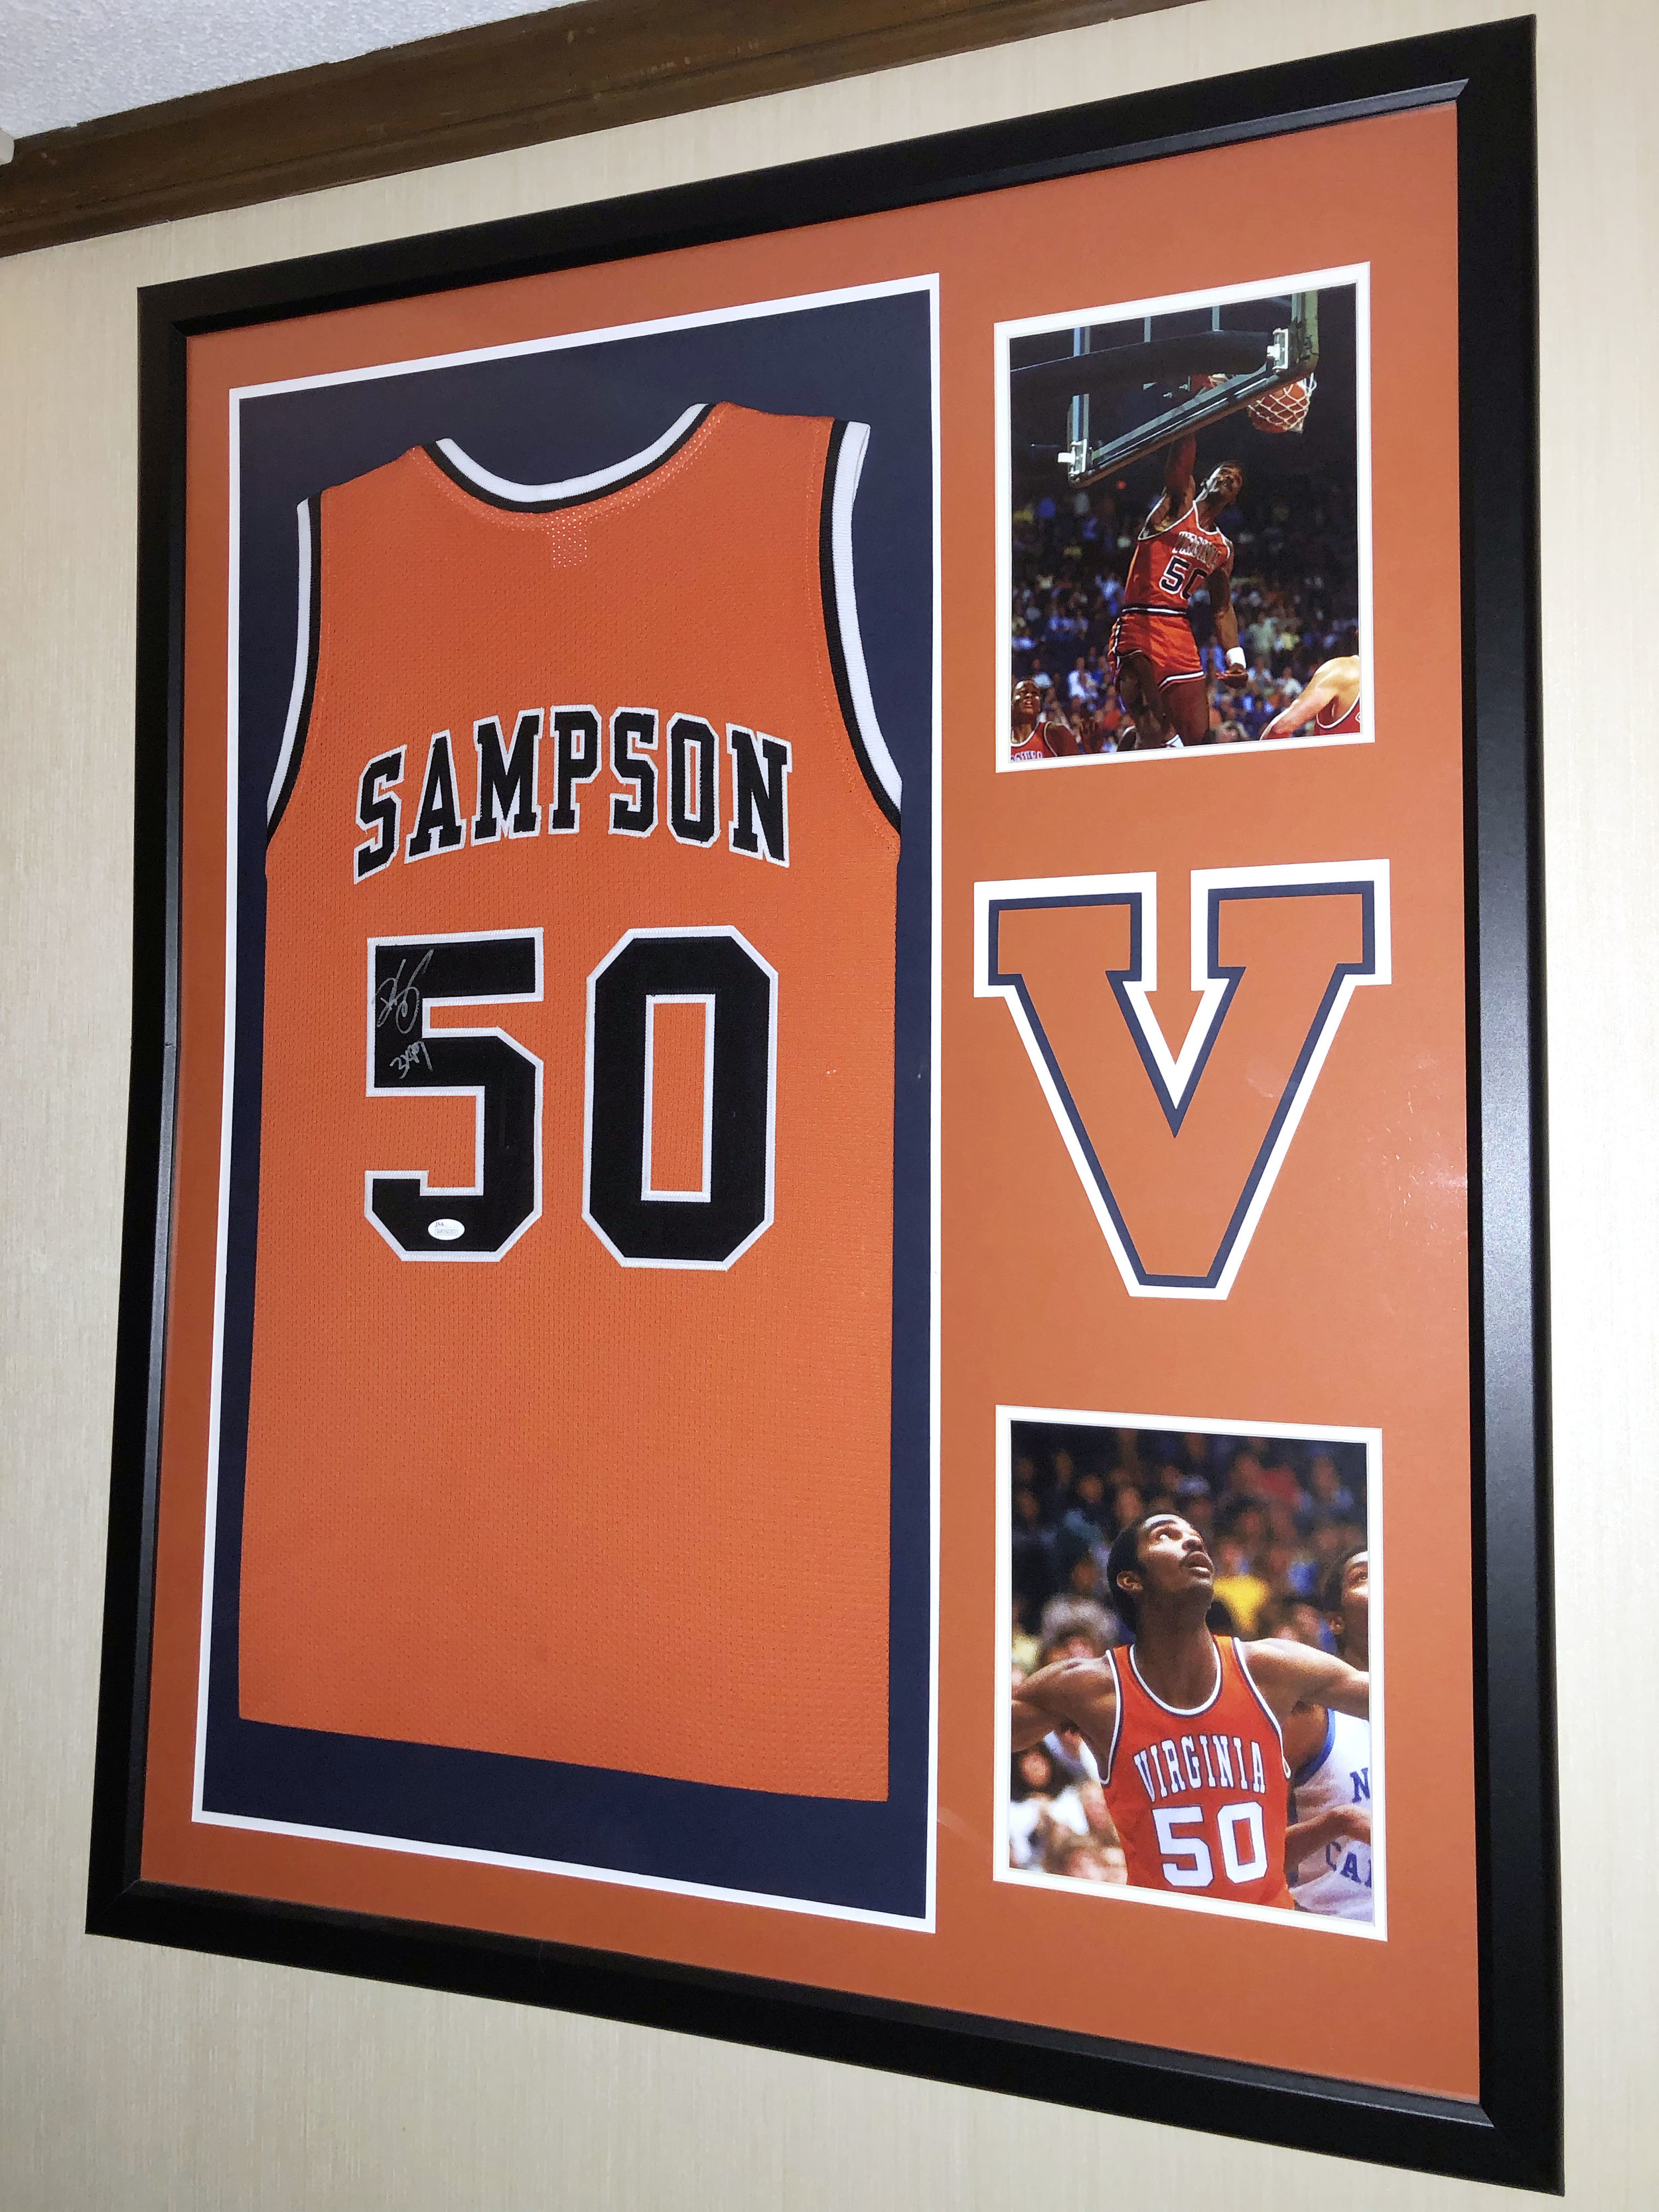 Bryan Hanks' autographed Ralph Sampson jersey still hangs proudly in his man cave. Photo courtesy of the writer